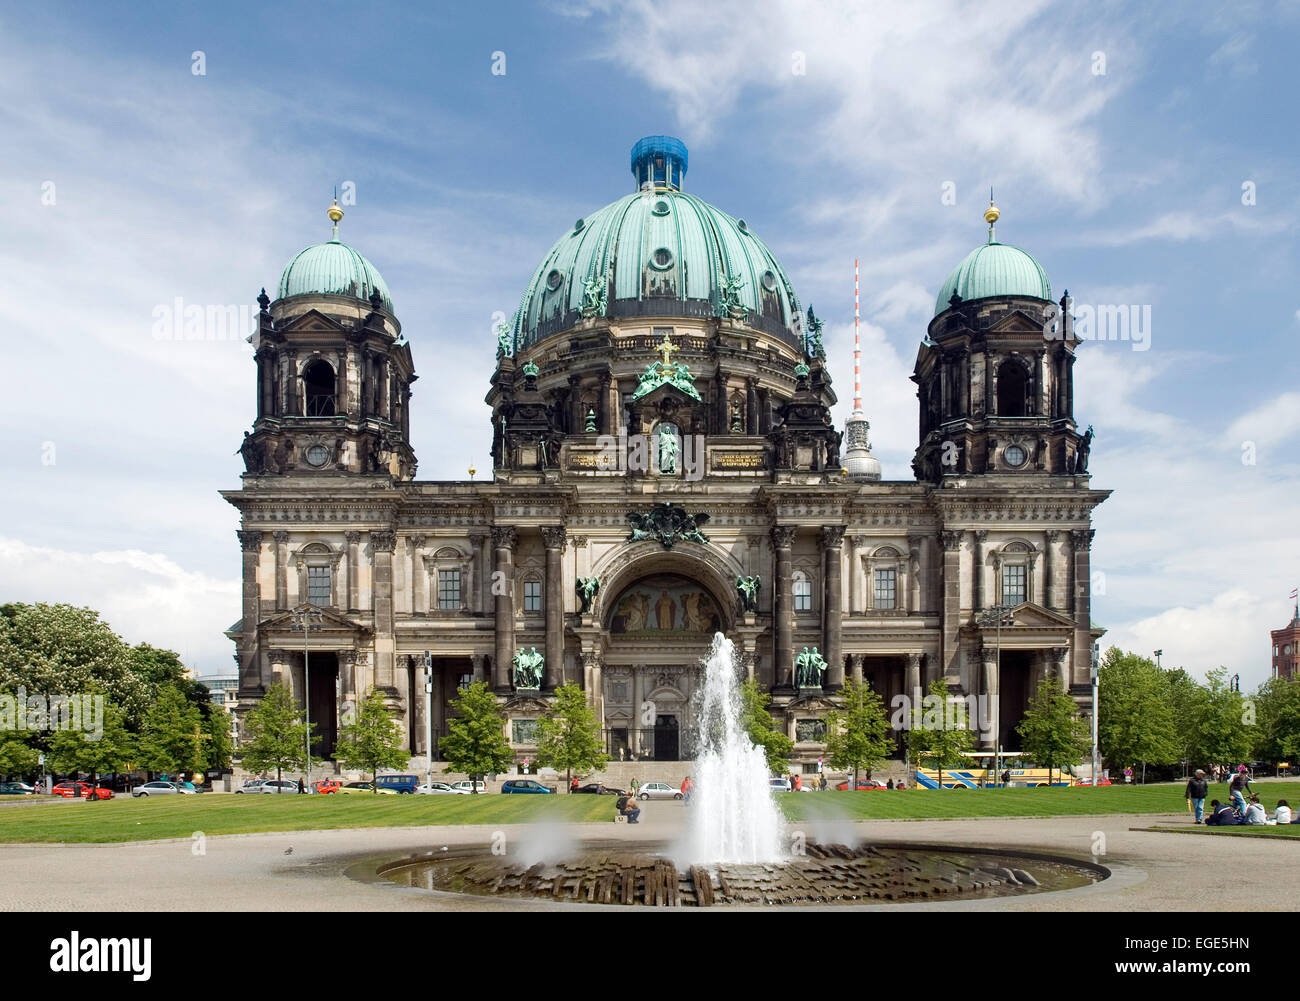 Berlin cathedral minster dom germany europe - Stock Image